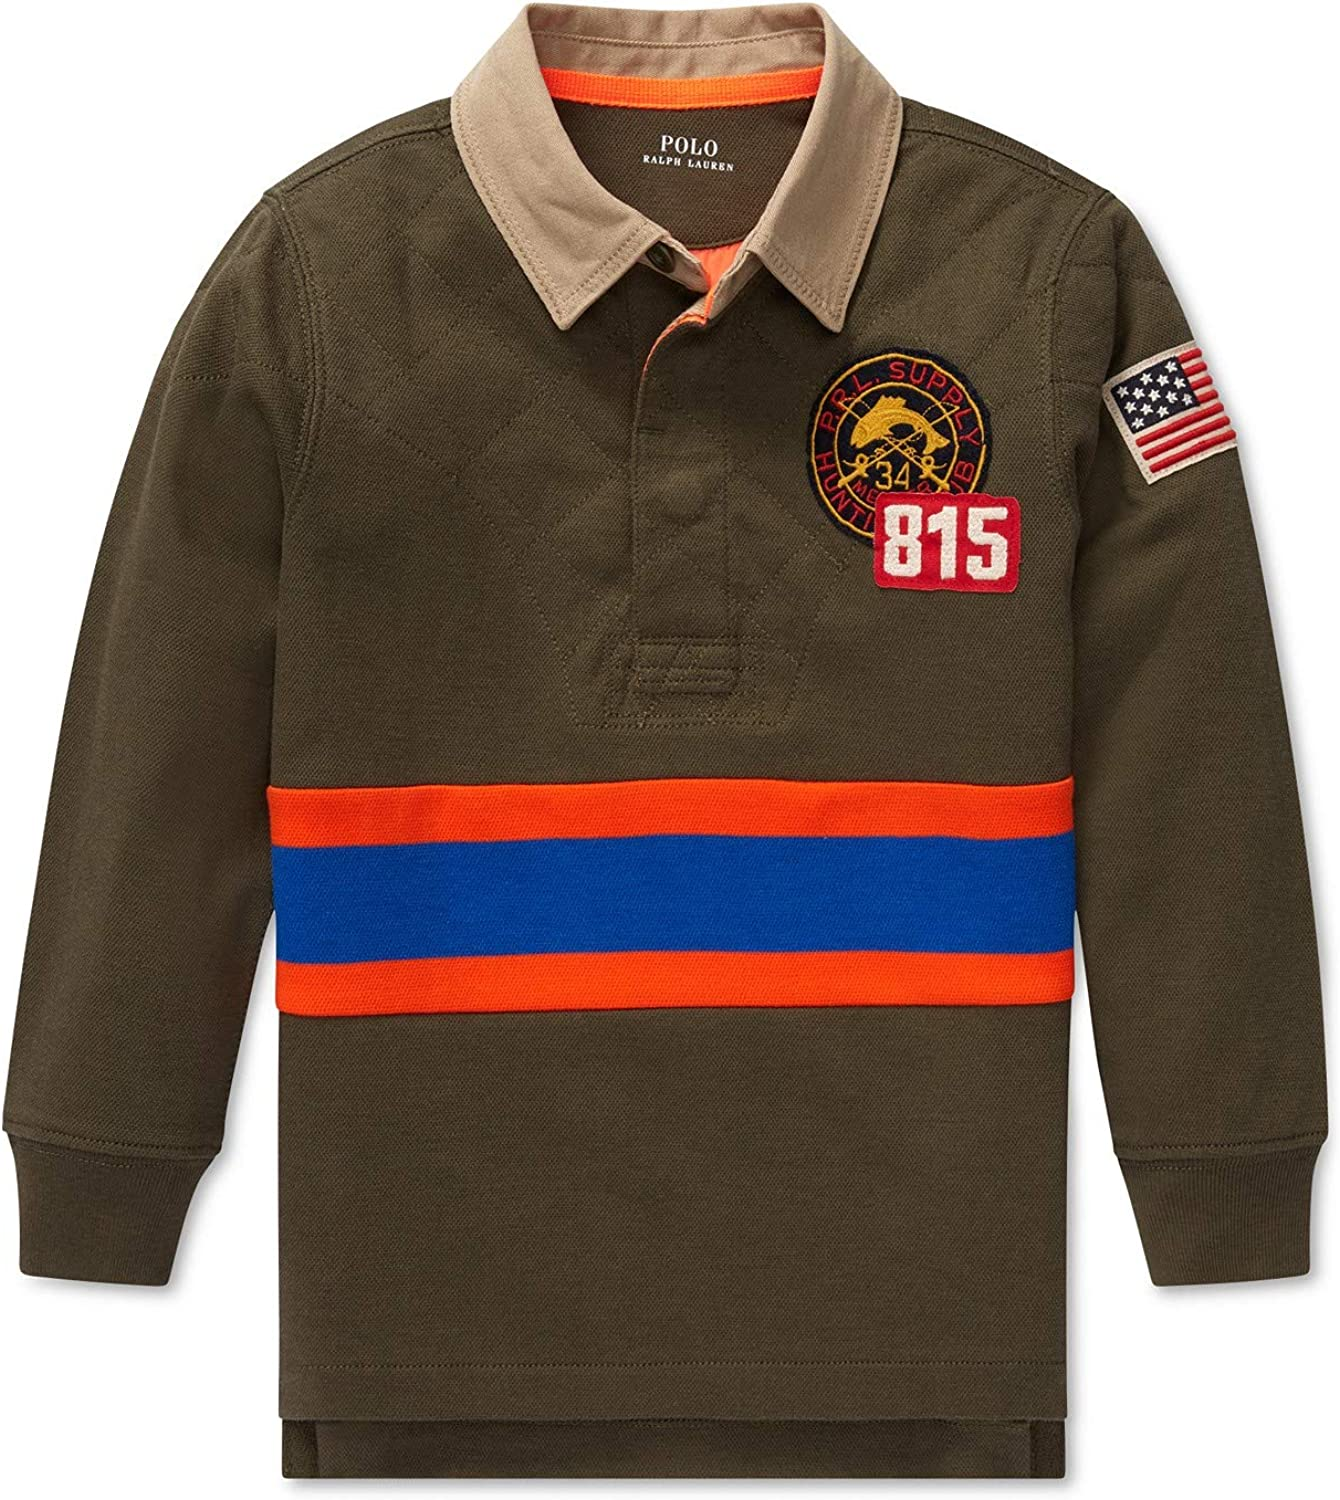 Lauren Polo Boys Long Sleeve Hunting Crested Patch Rugby Shirt 2 2T Olive